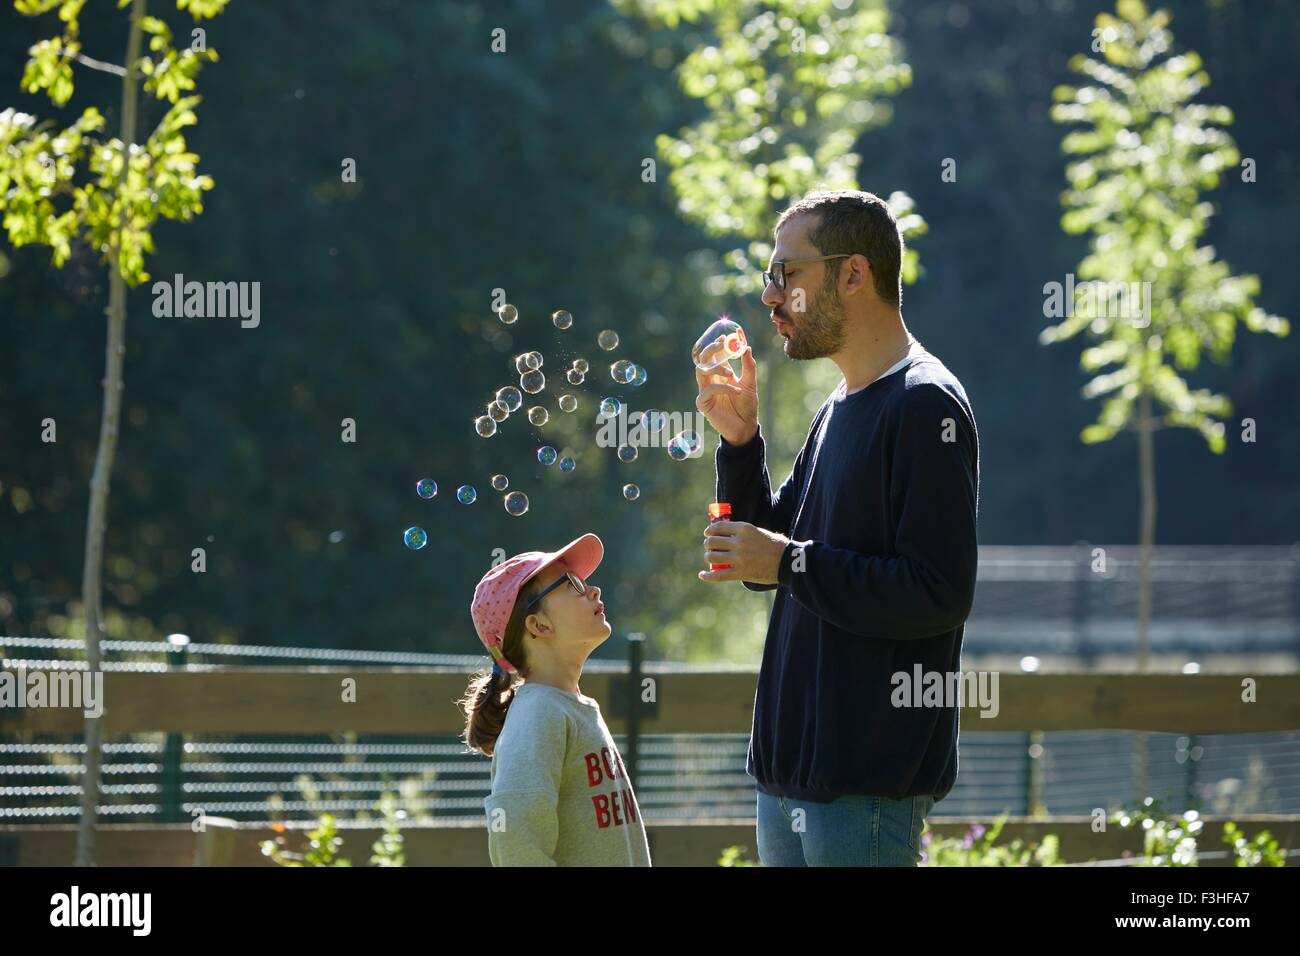 Man blowing bubbles as daughter looks up - Stock Image